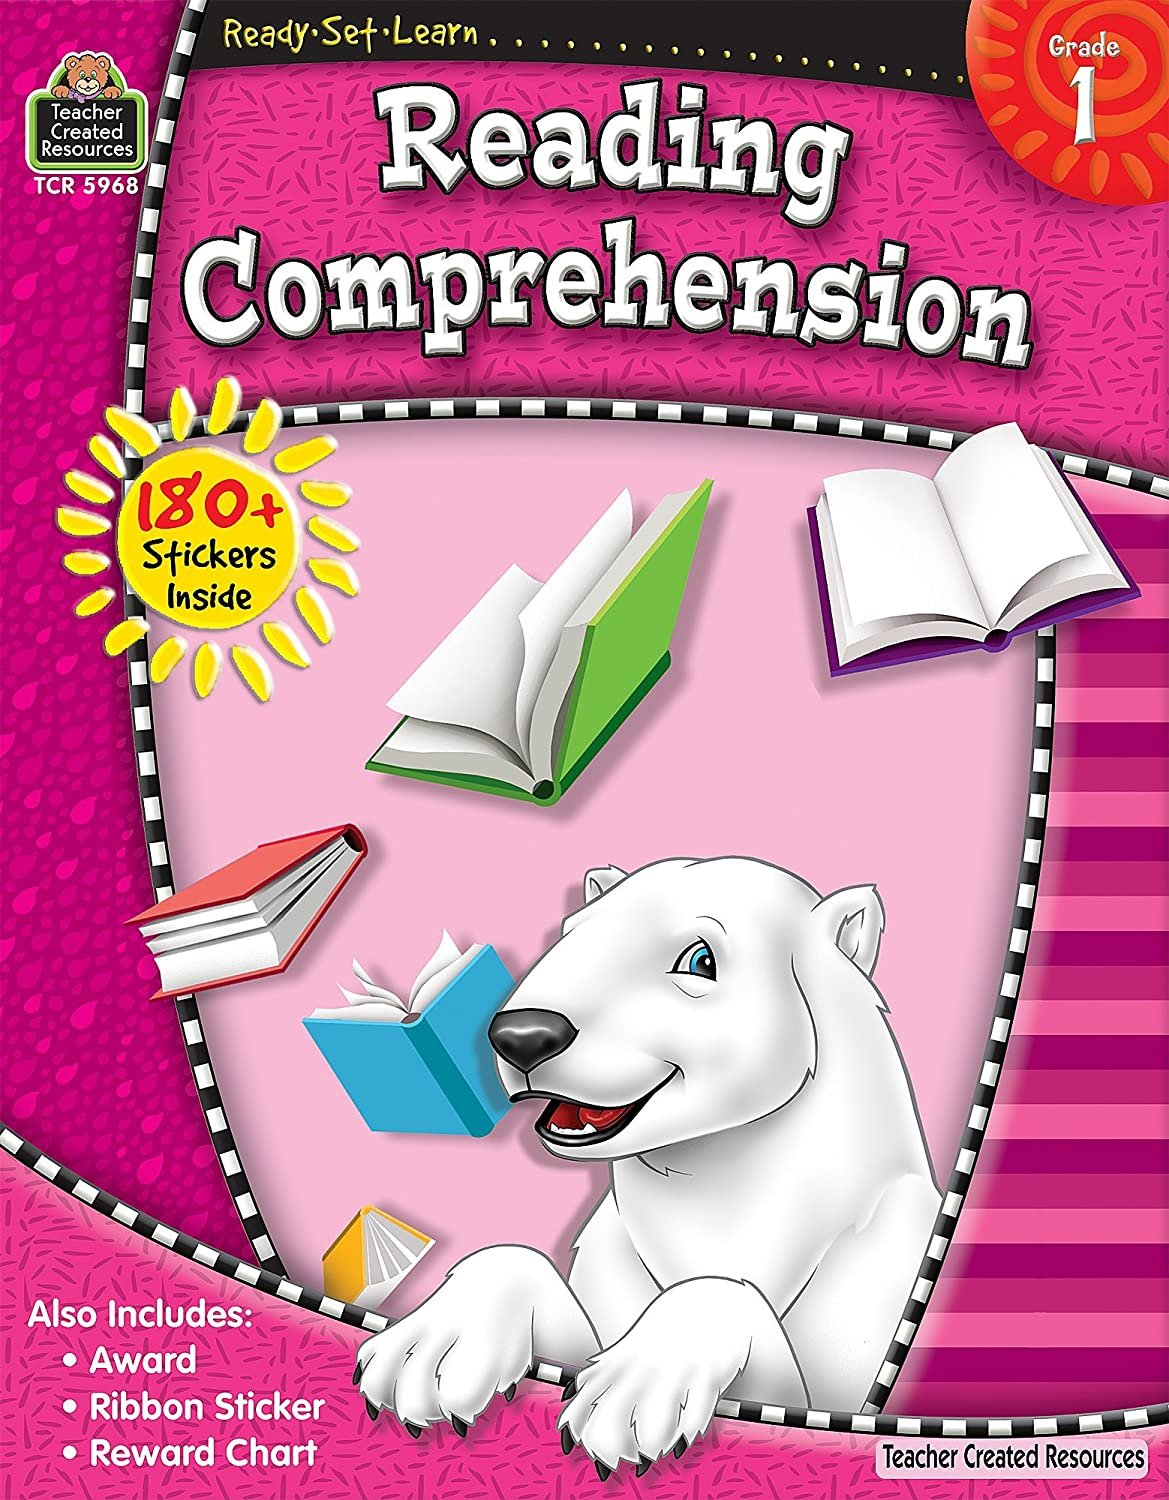 Teacher Created Resources Reading Comprehension (Grade 1)